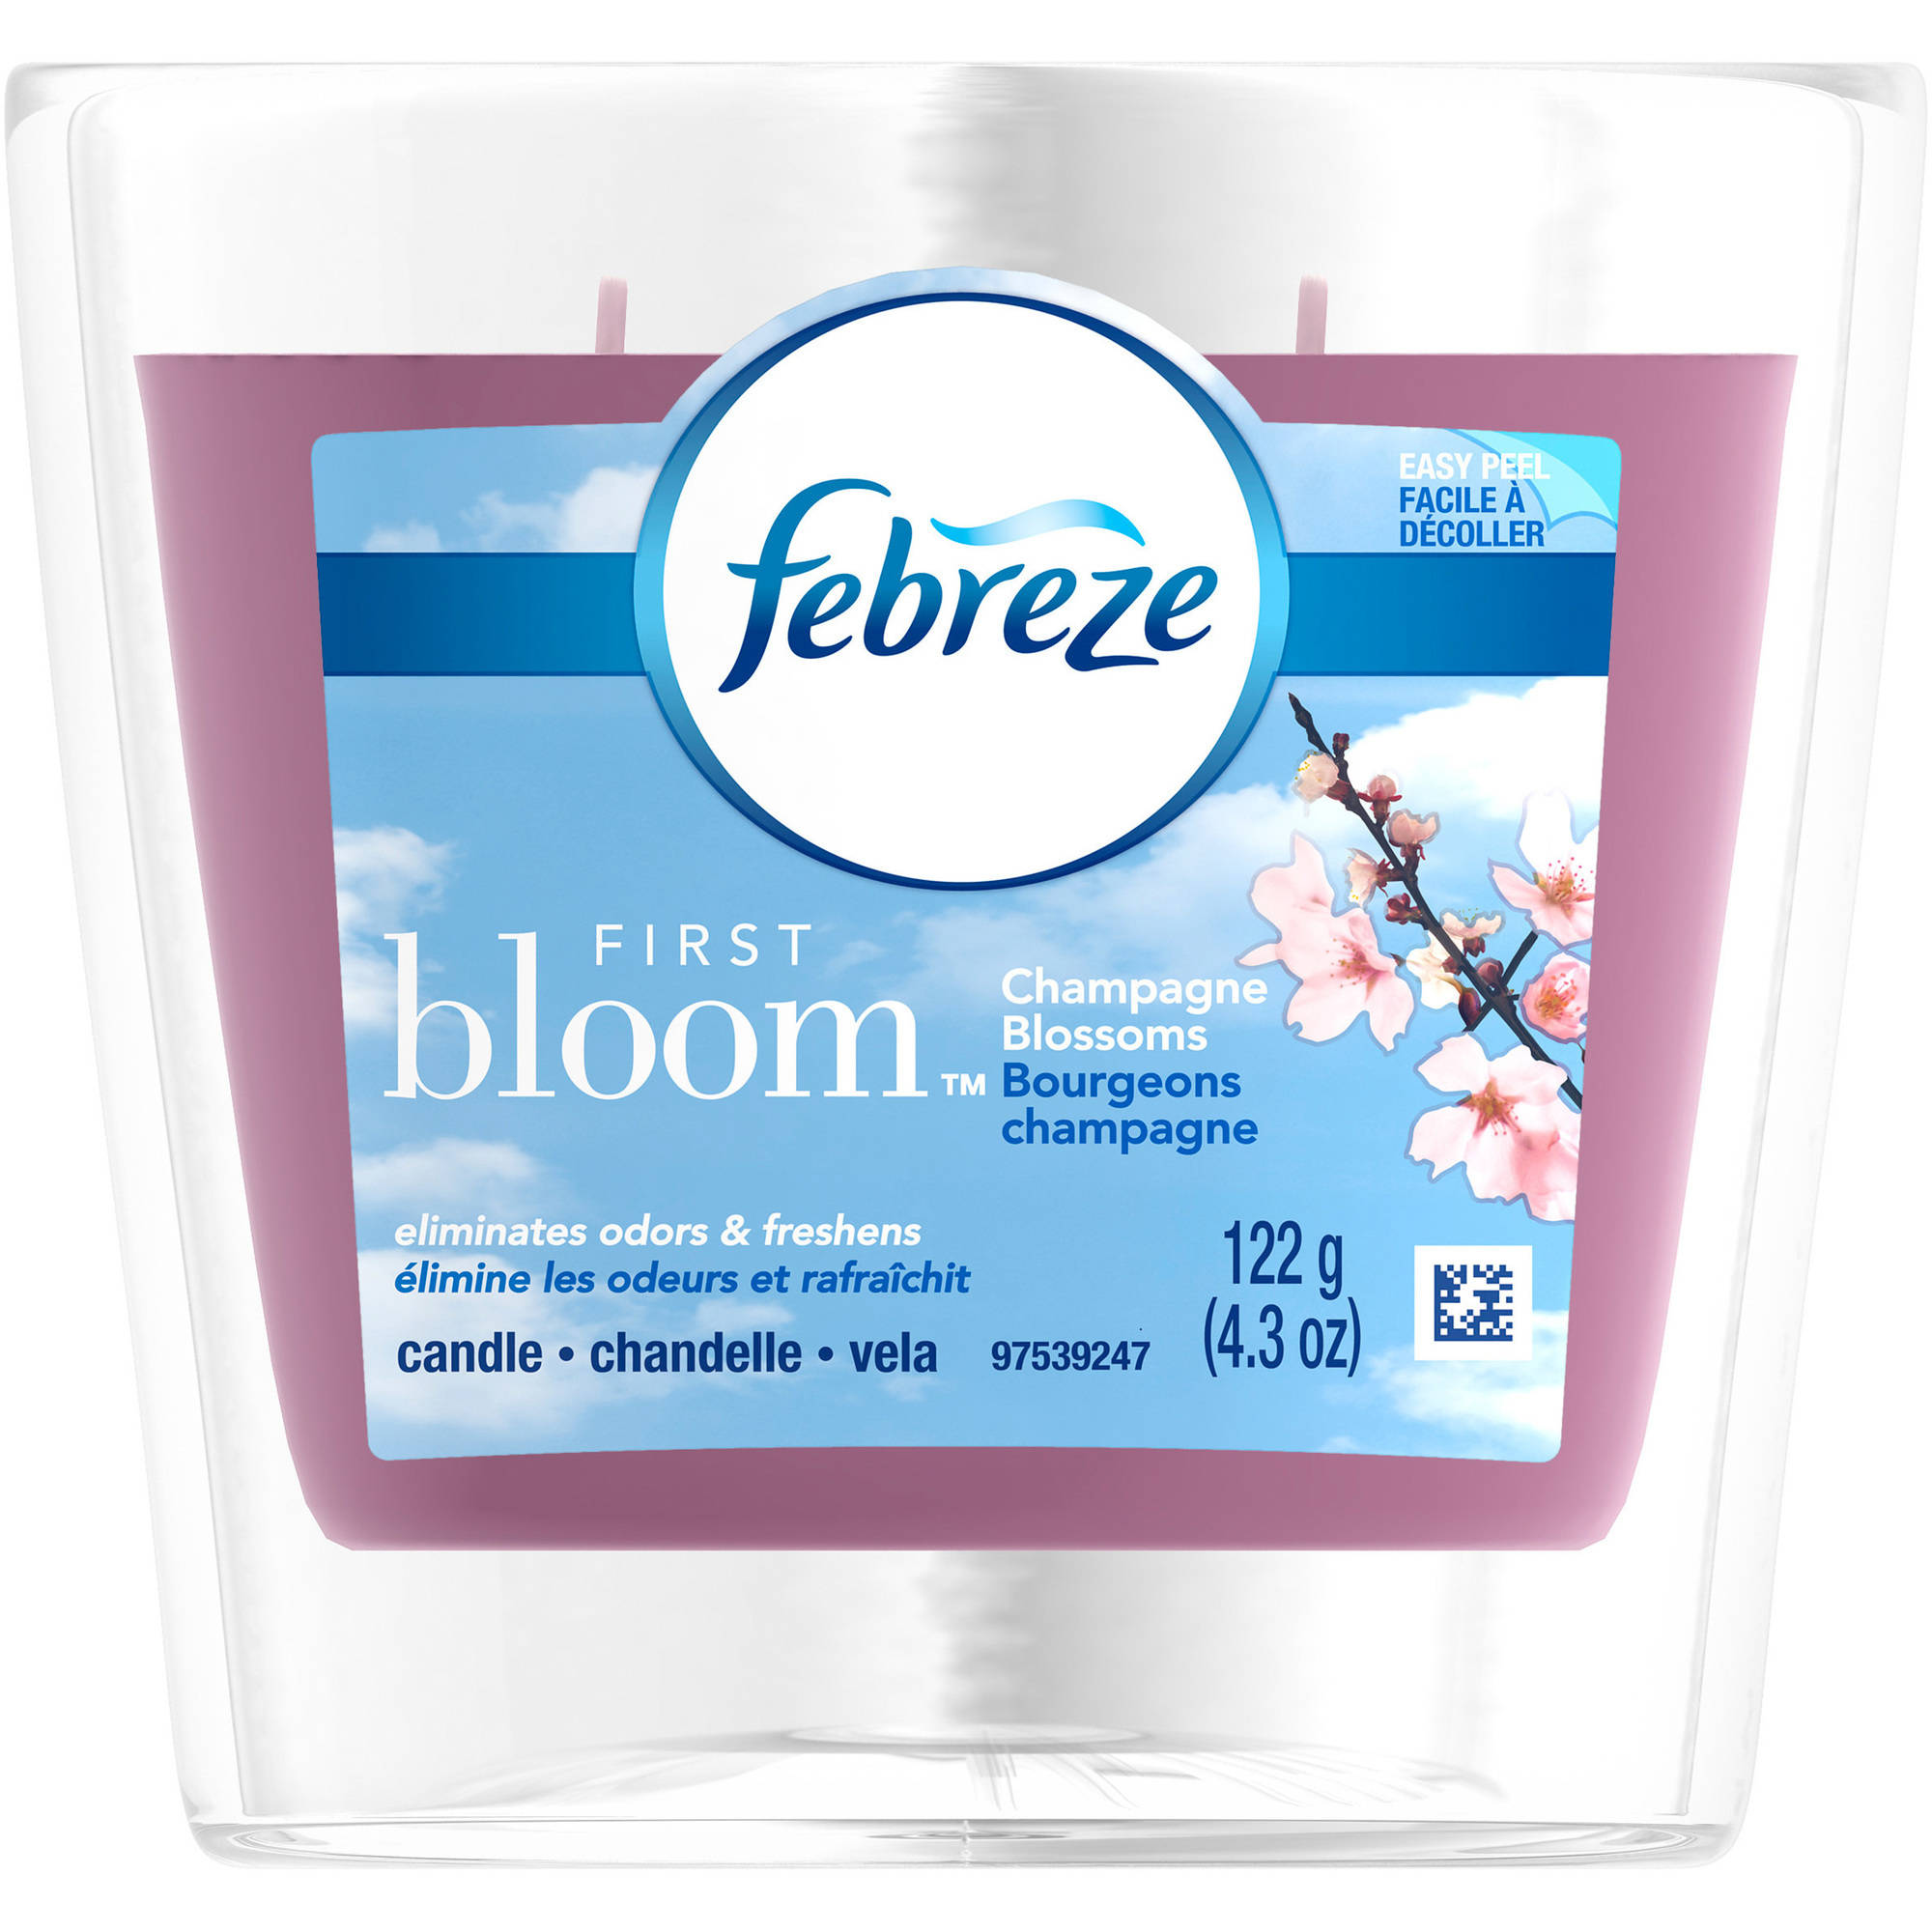 Febreze First Bloom Champagne Blossoms Air Freshener Candle, 4.3 oz